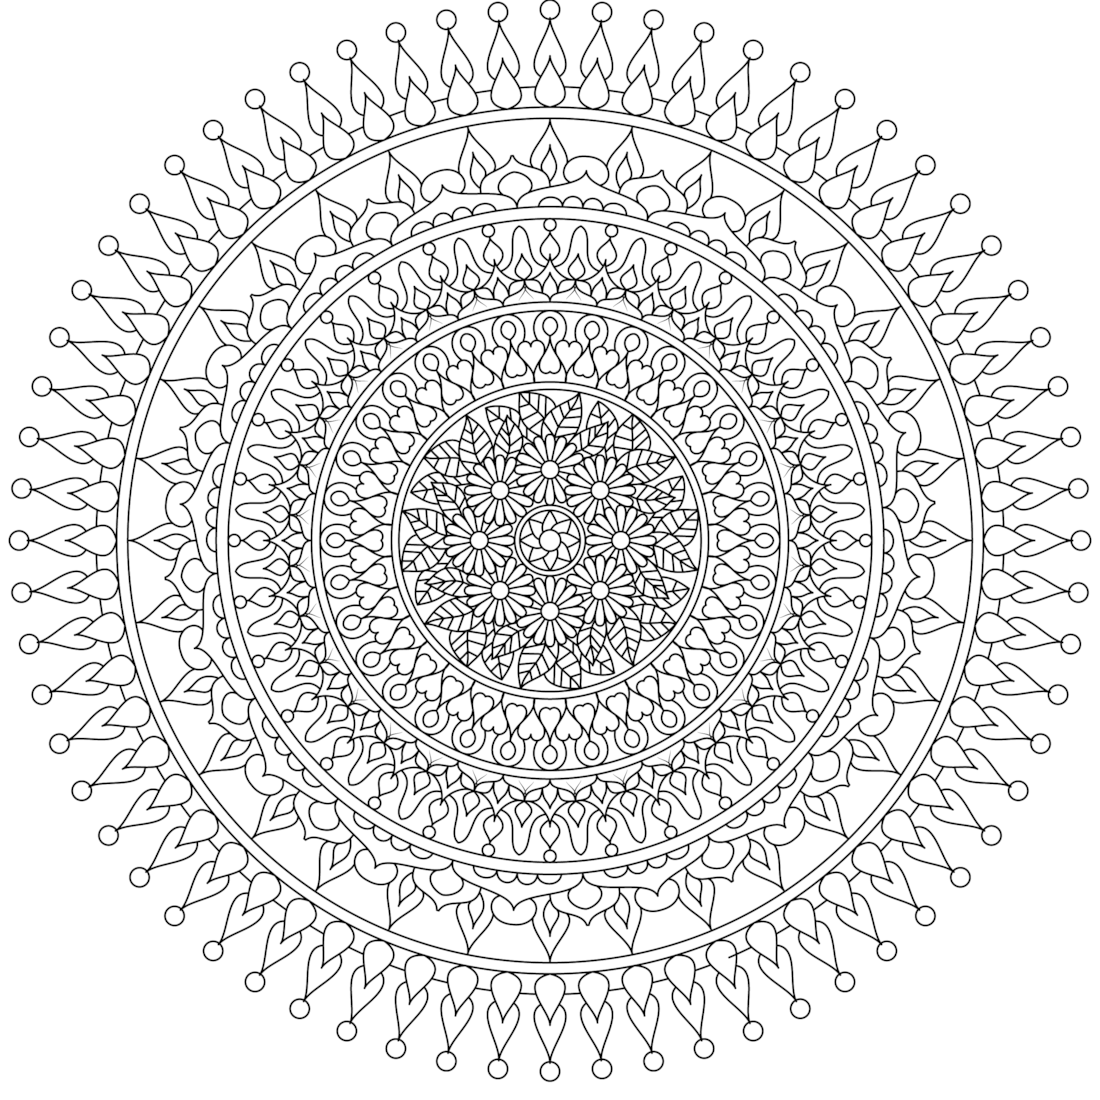 moon heart a beautiful free mandala coloring page you can print - Pictures That You Can Color And Print